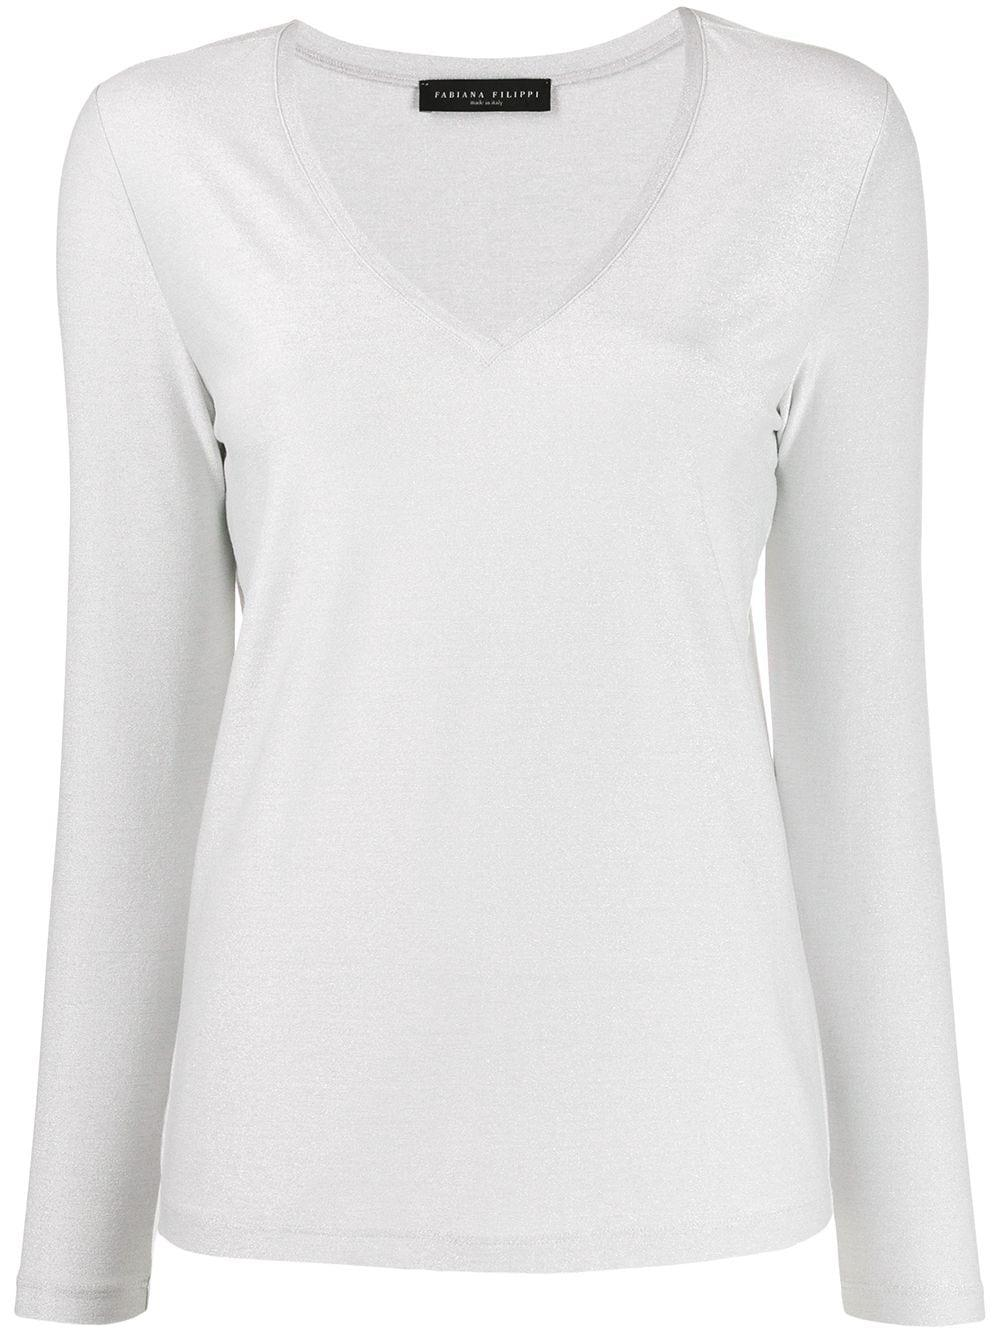 Long Sleeve V- Neck Lurex Jersey Top Item # JED260B970